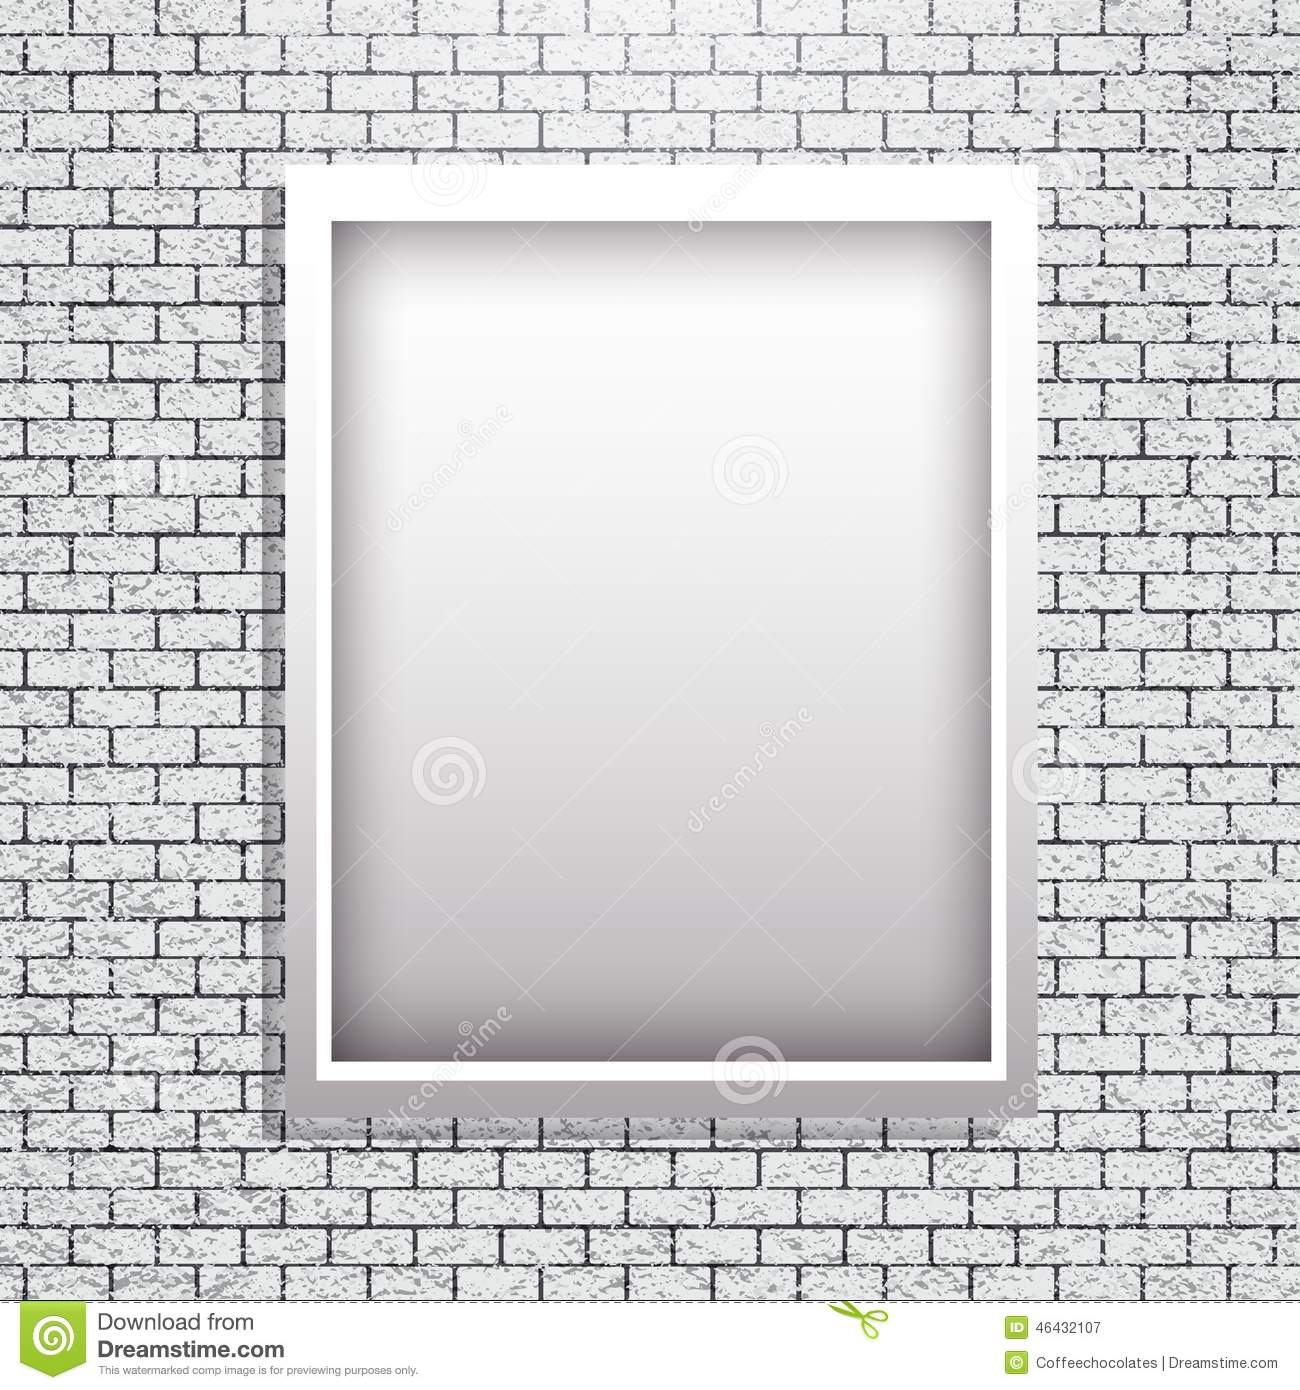 Metal Frame On Brick Wall Vector Stock Vector - Illustration of ...